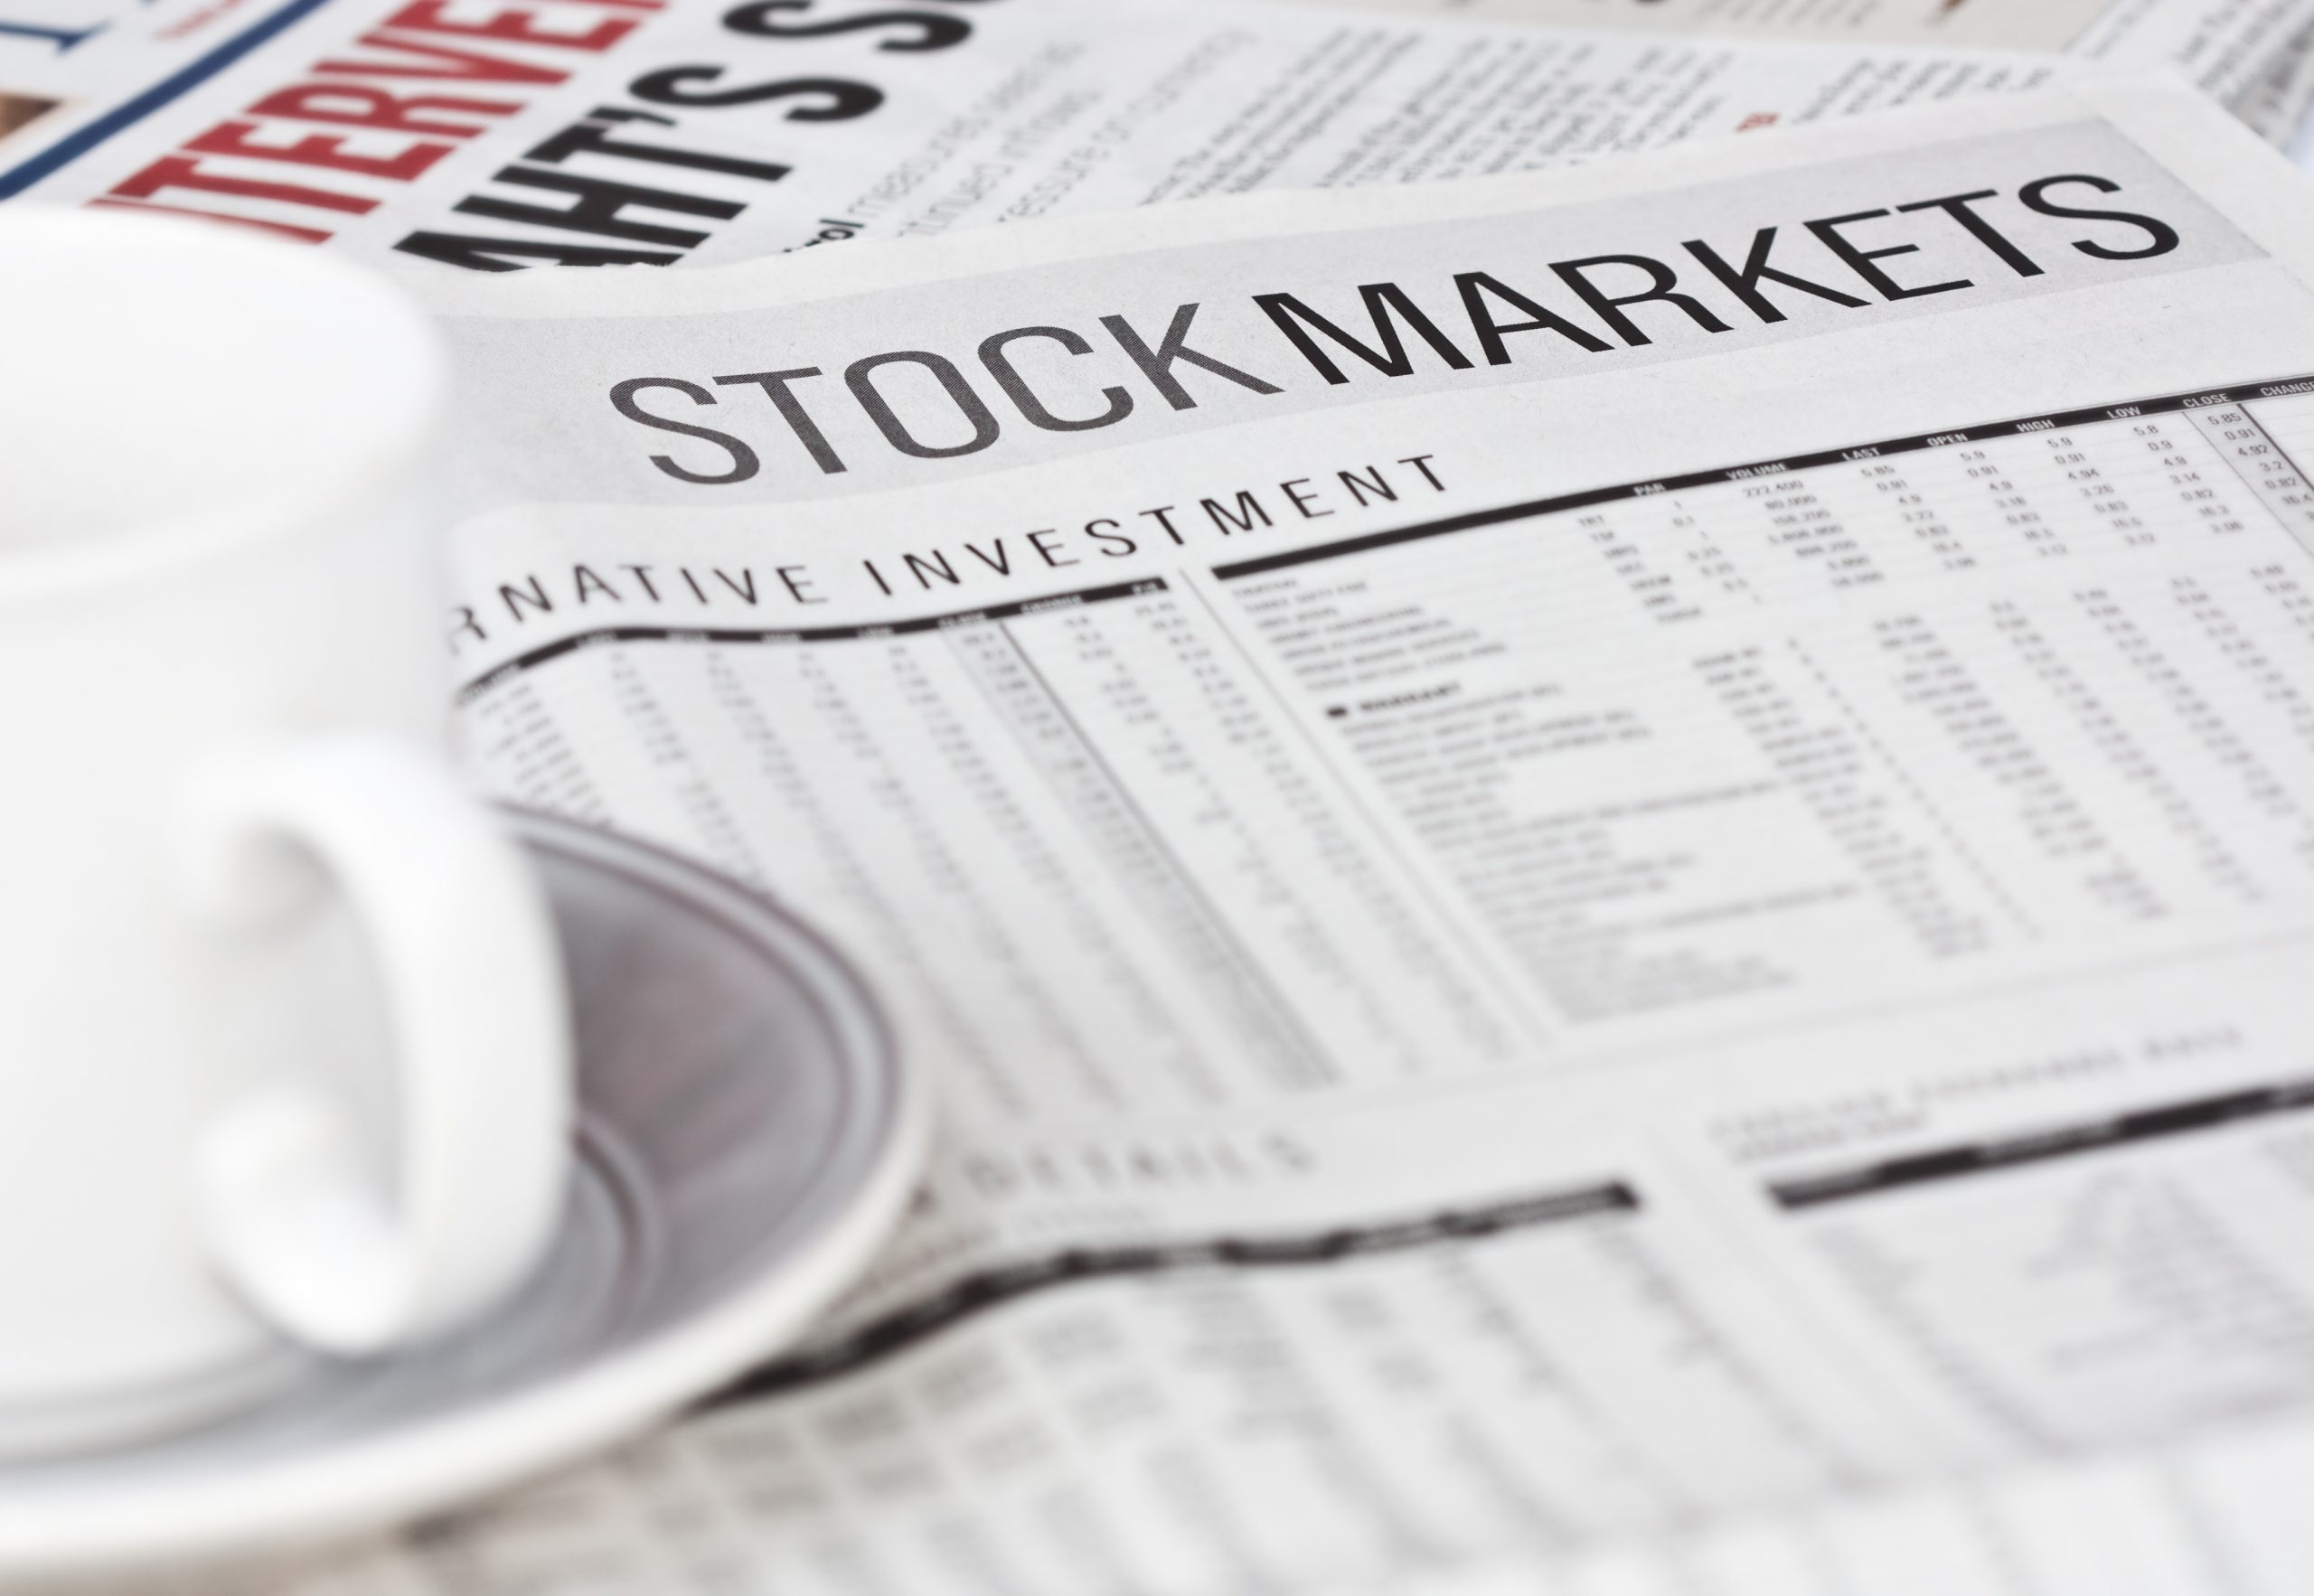 Stock markets newspaper